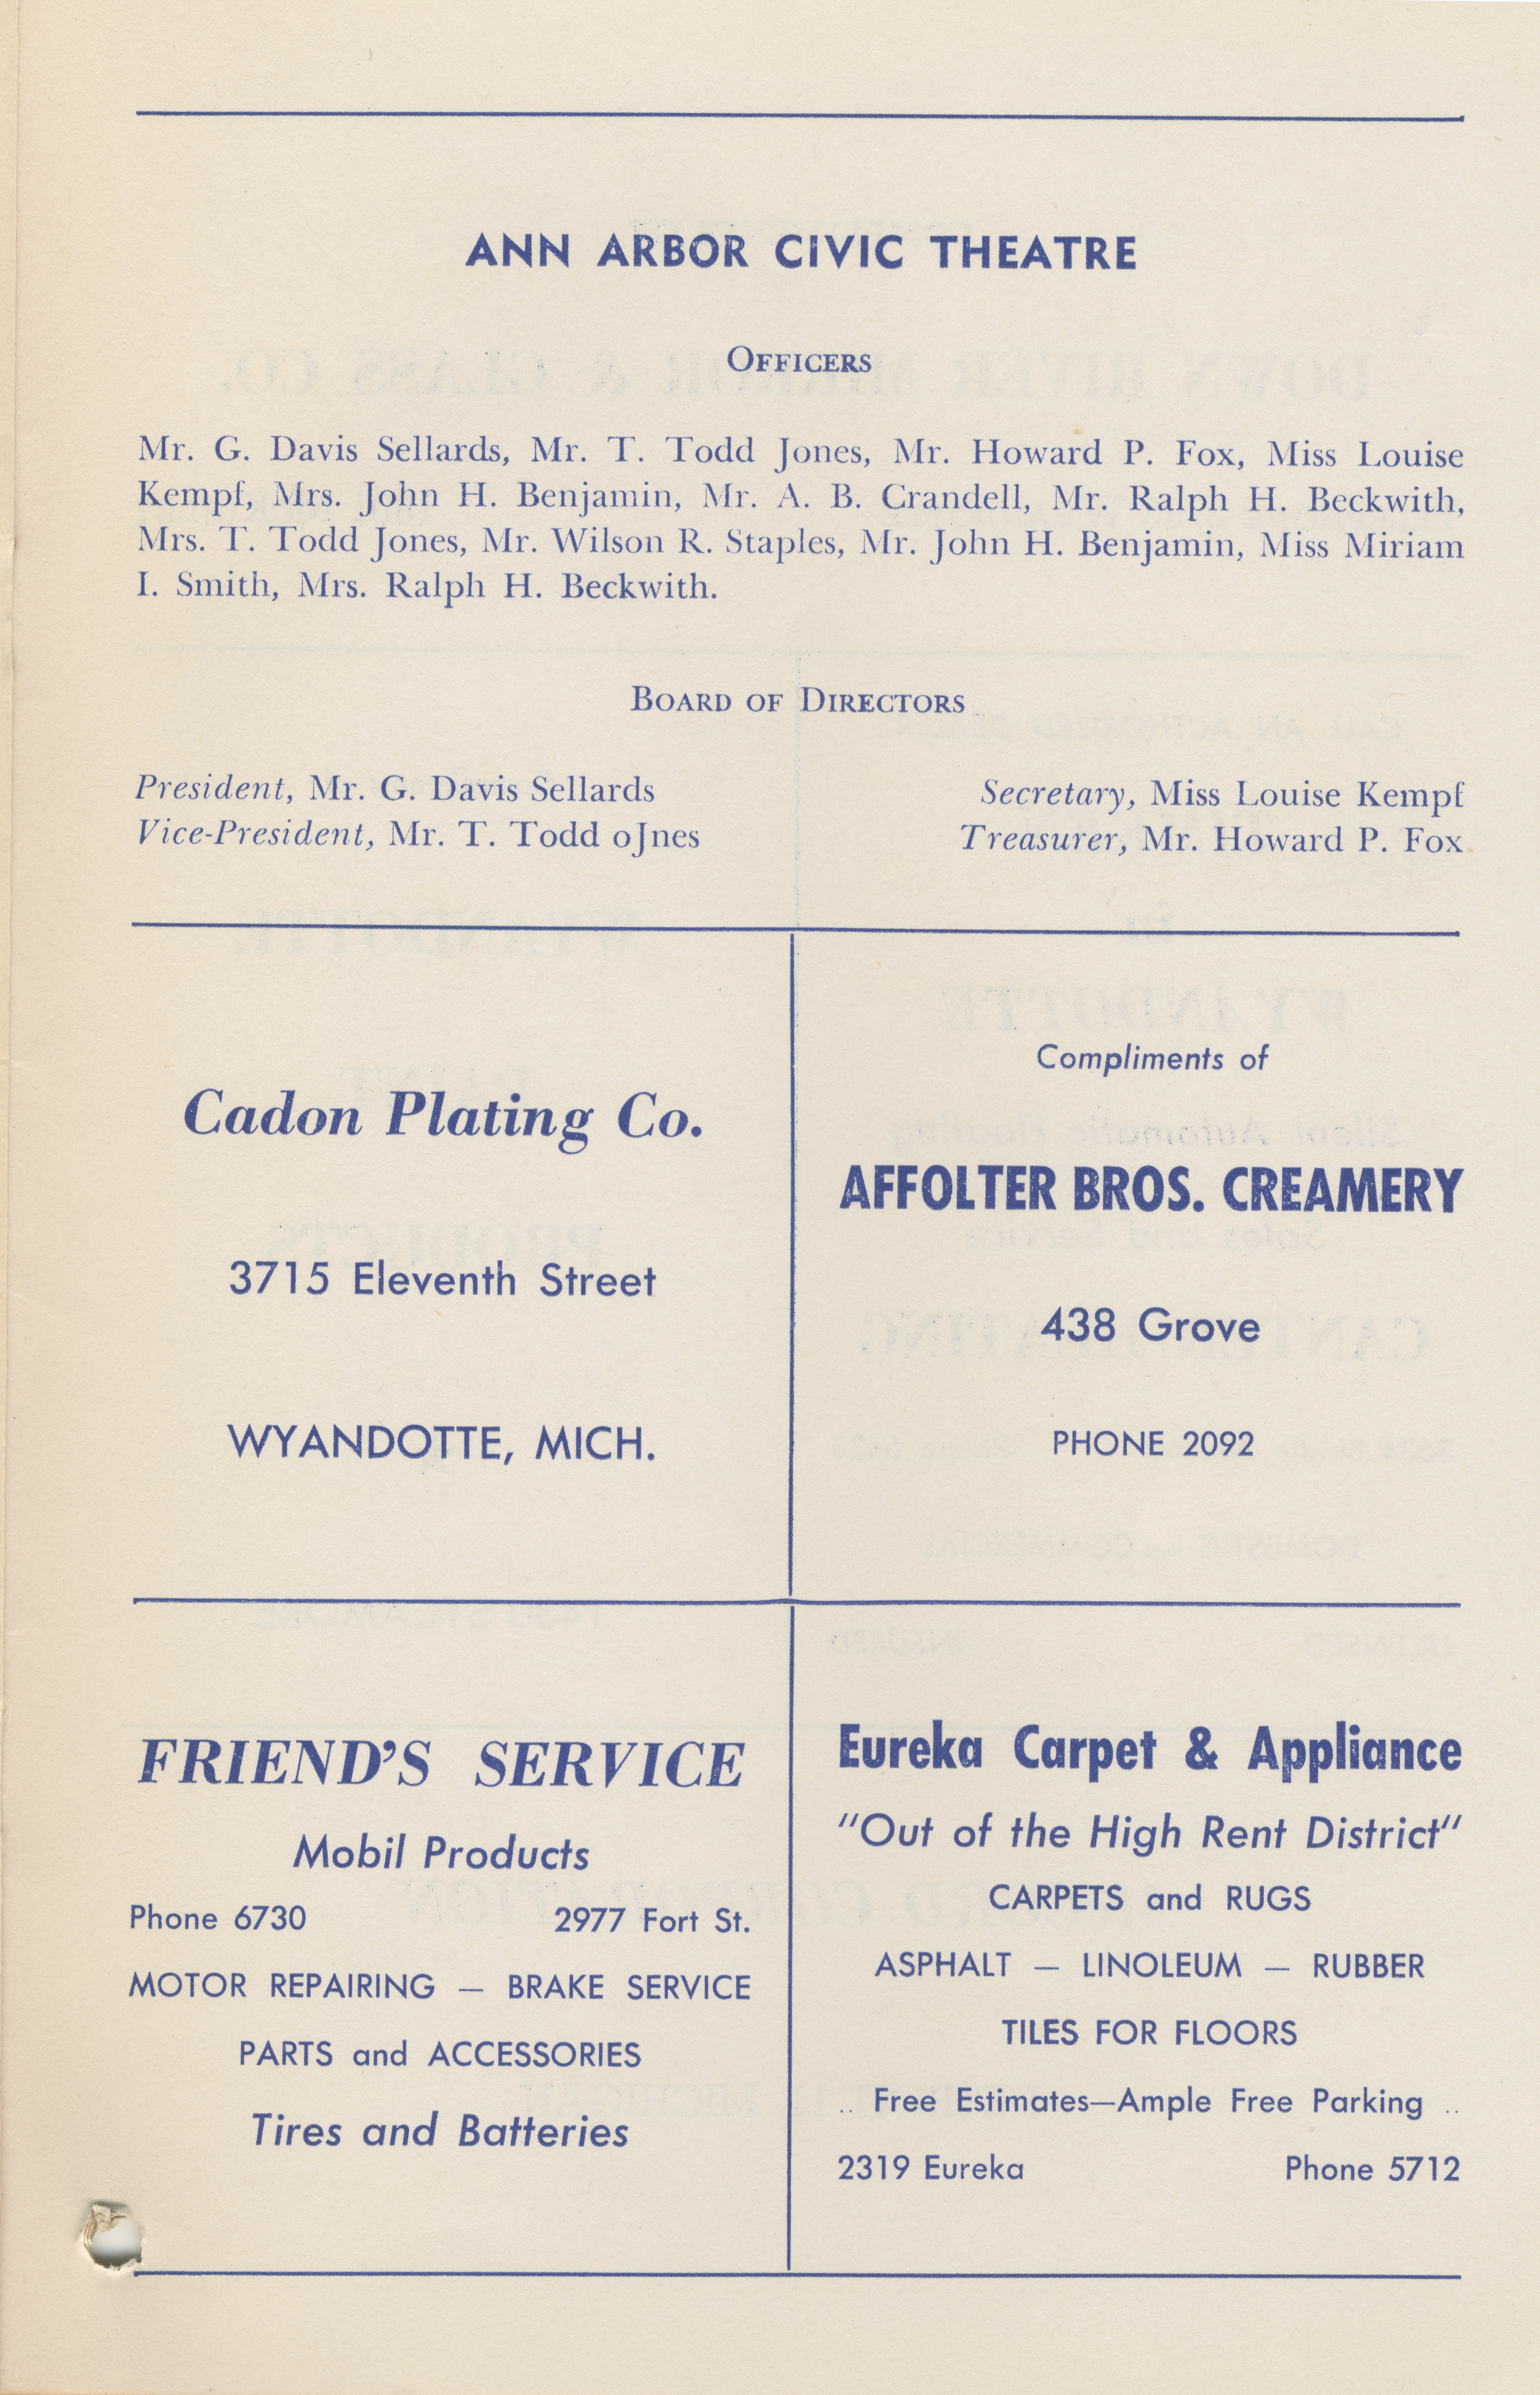 Ann Arbor Civic Theatre Program: Fundraising Performance of Male Animal, May 06, 1950 image